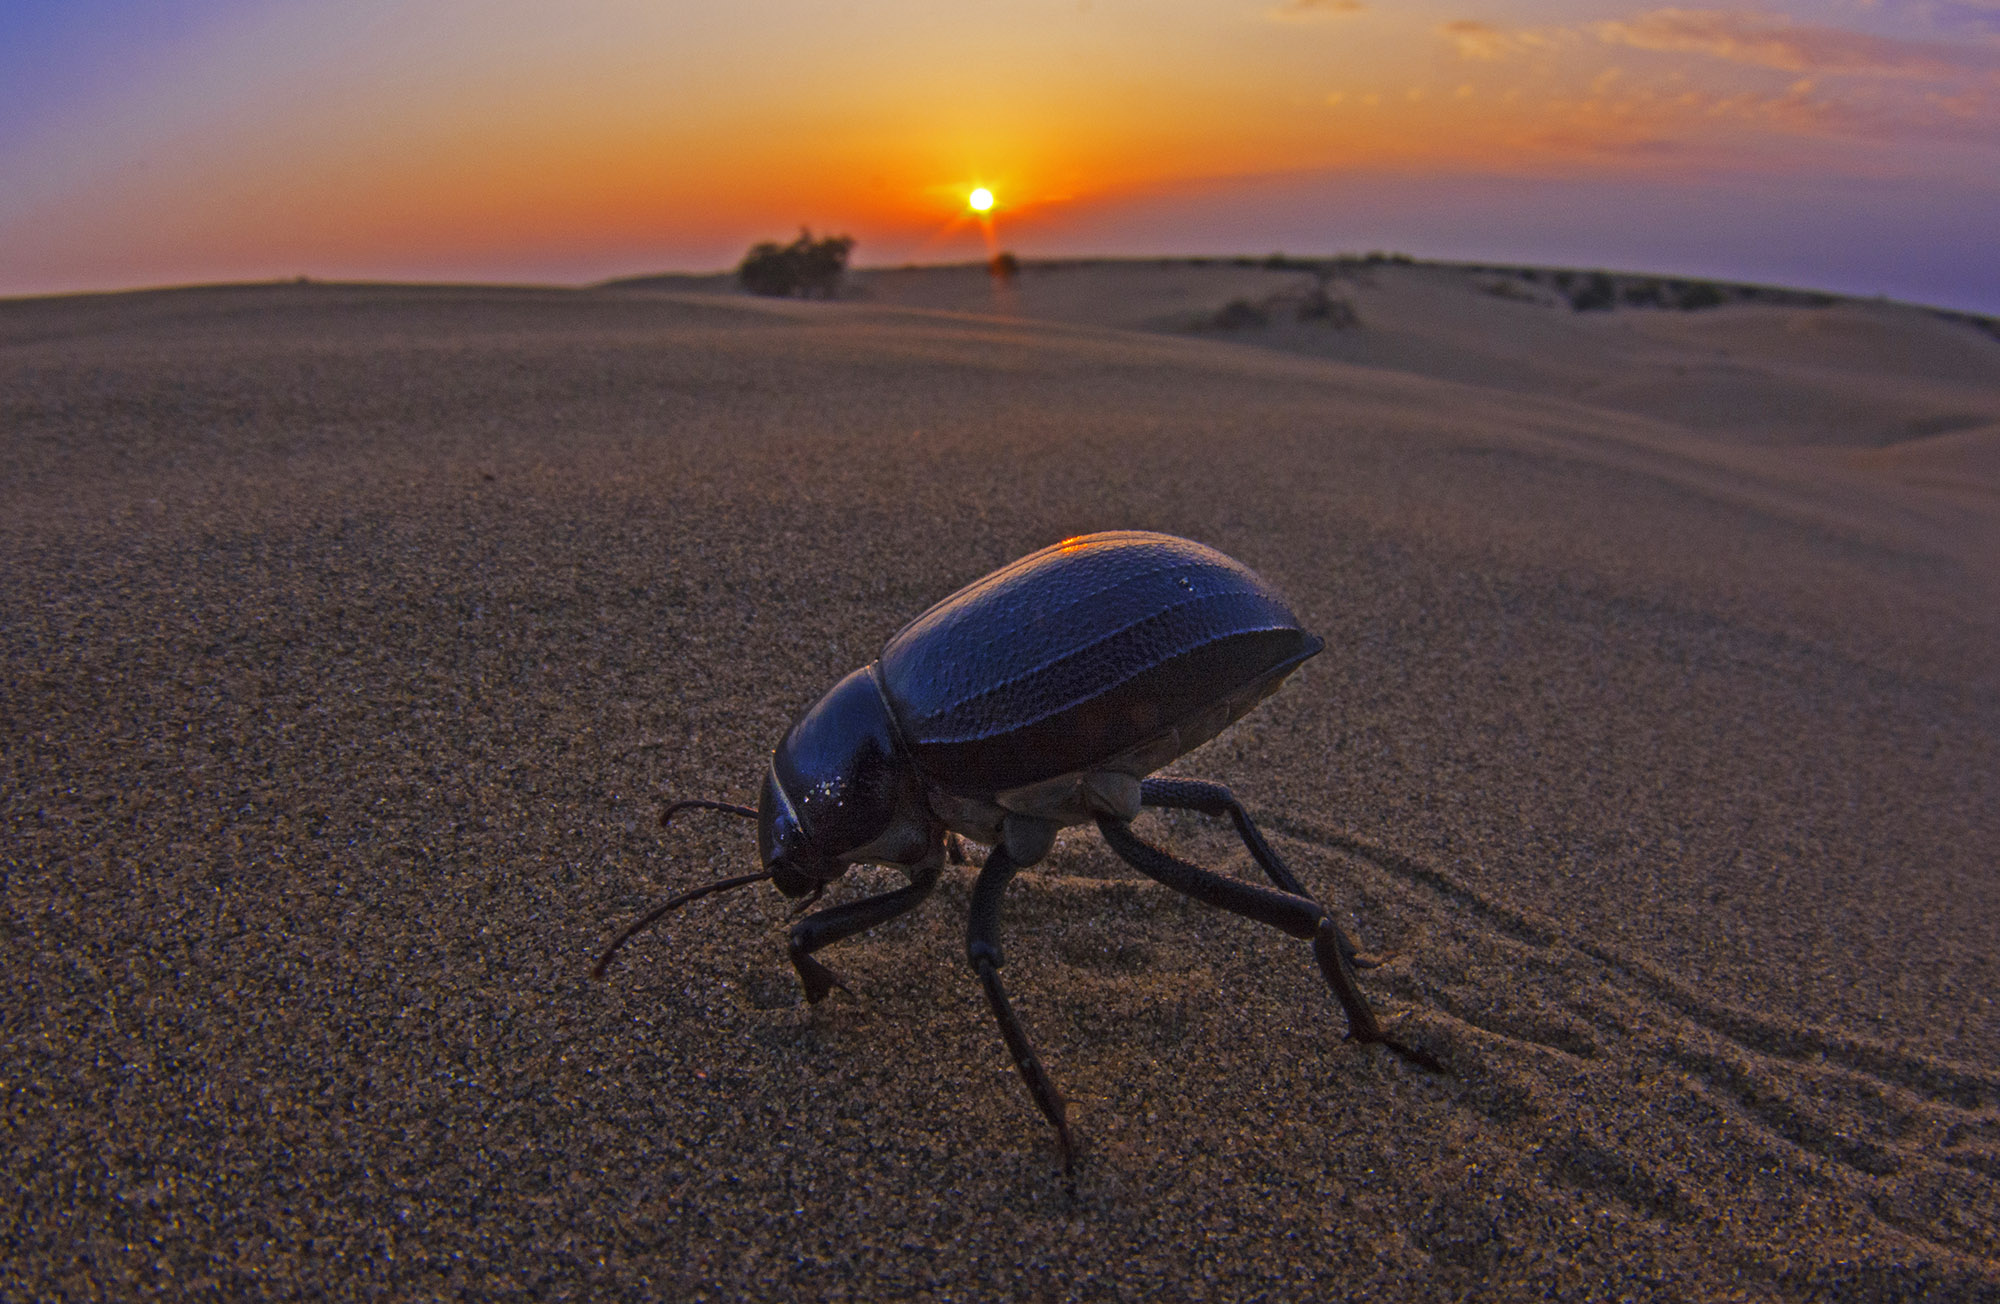 True to their names, dung beetles feed mostly on feces, and are known to carry weight that is more than 1,000 times its own bodyweight. Photo: Dhritiman Mukherjee